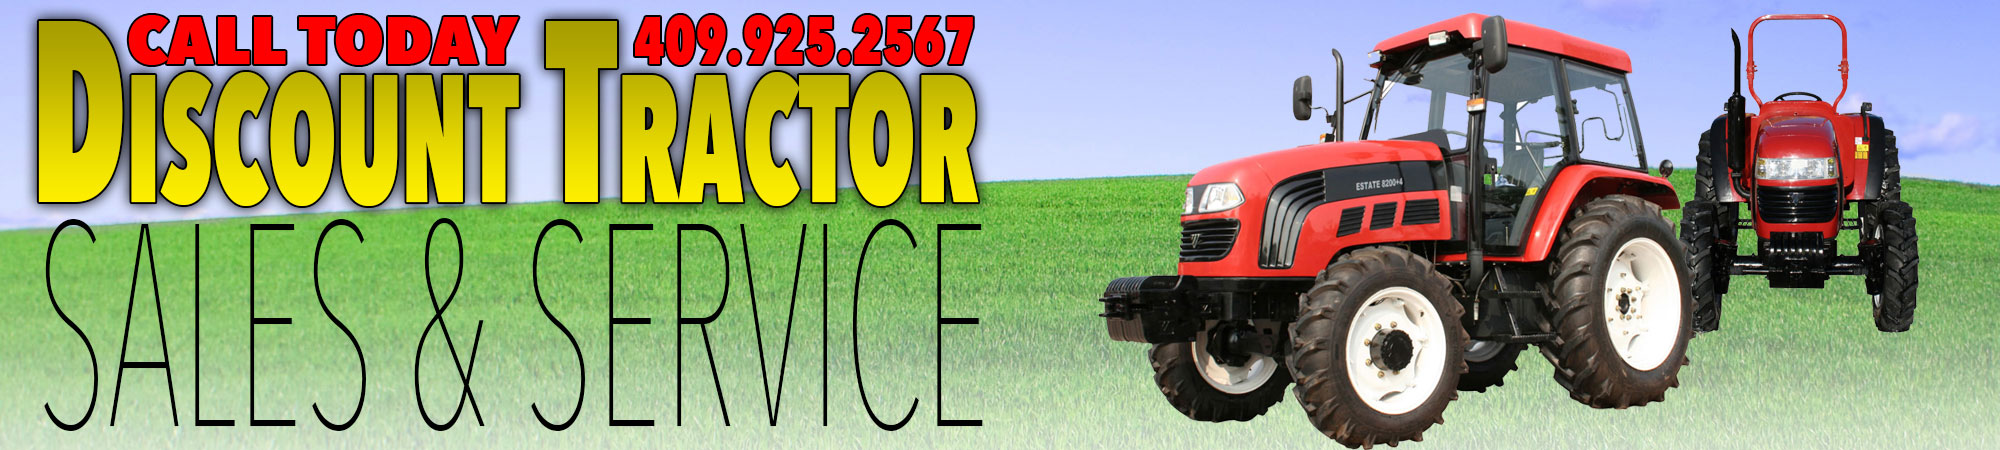 Discount Tractor Parts and Tractor Sales